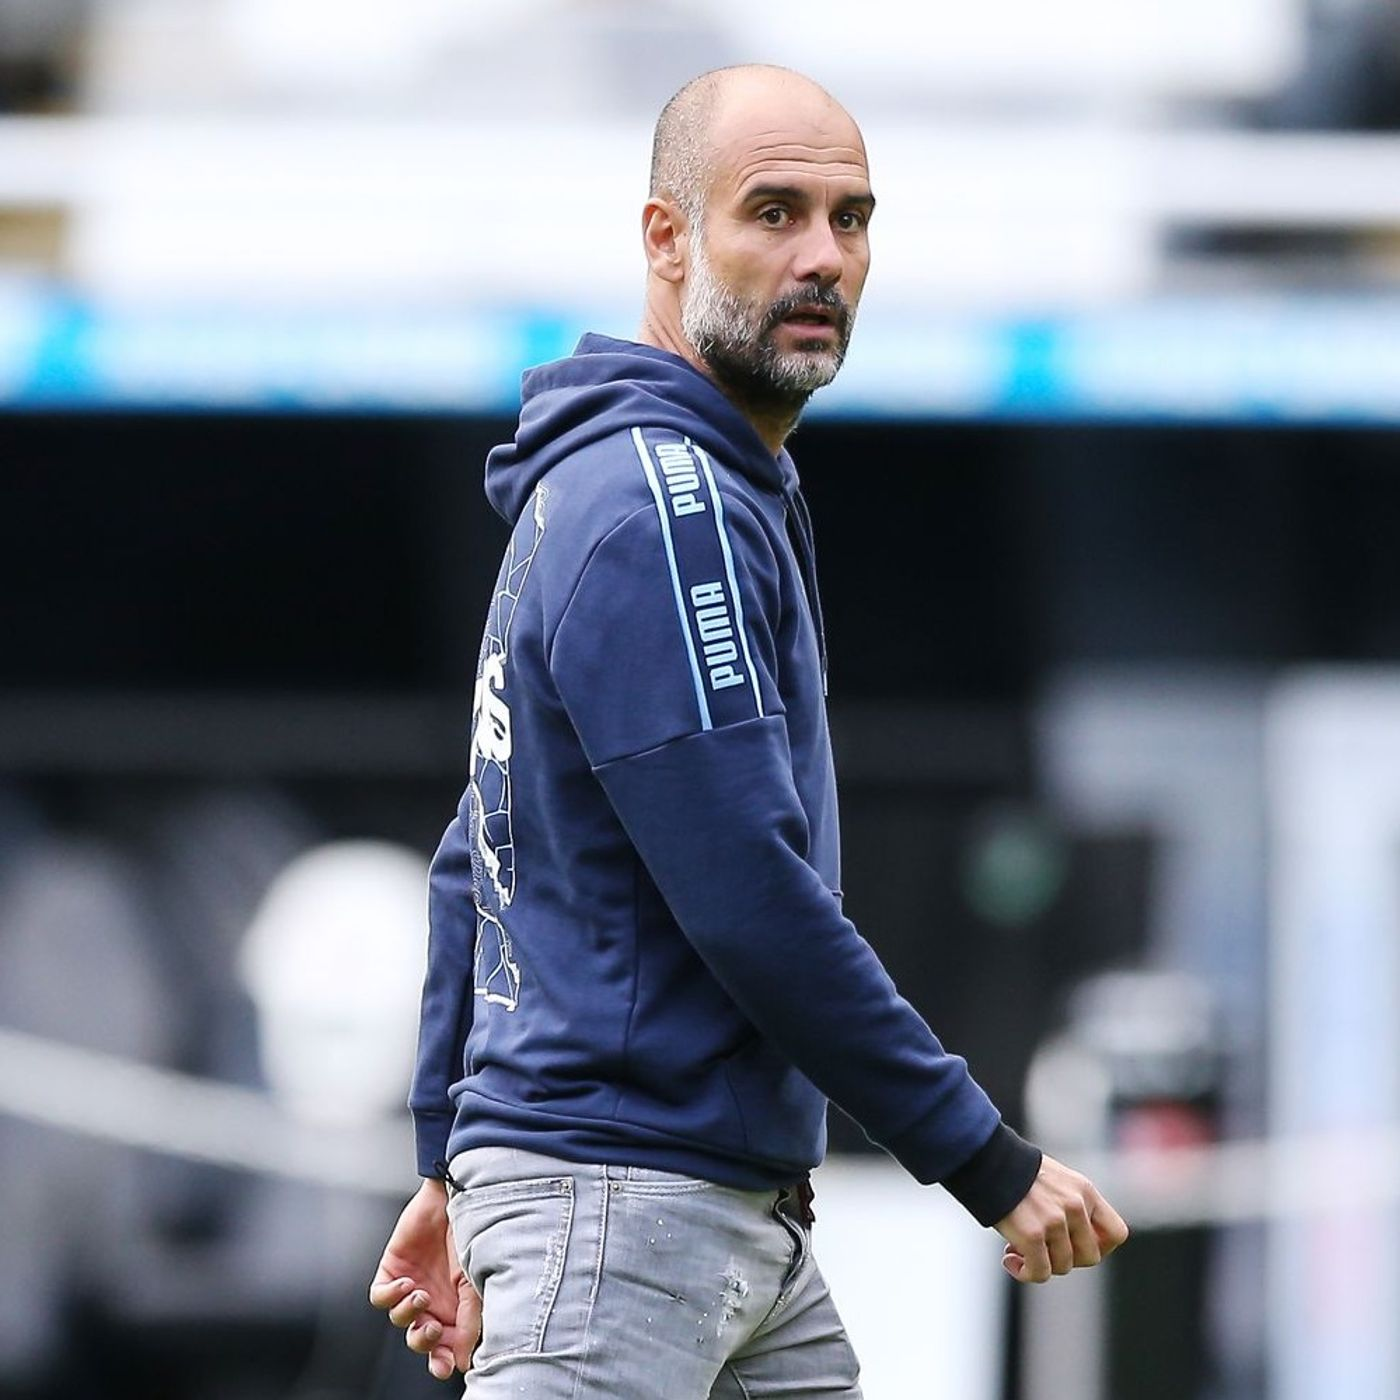 Behind Enemy Lines: Pep's City looking to spare blushes as champions head to Etihad | Re-build in order to halt Reds